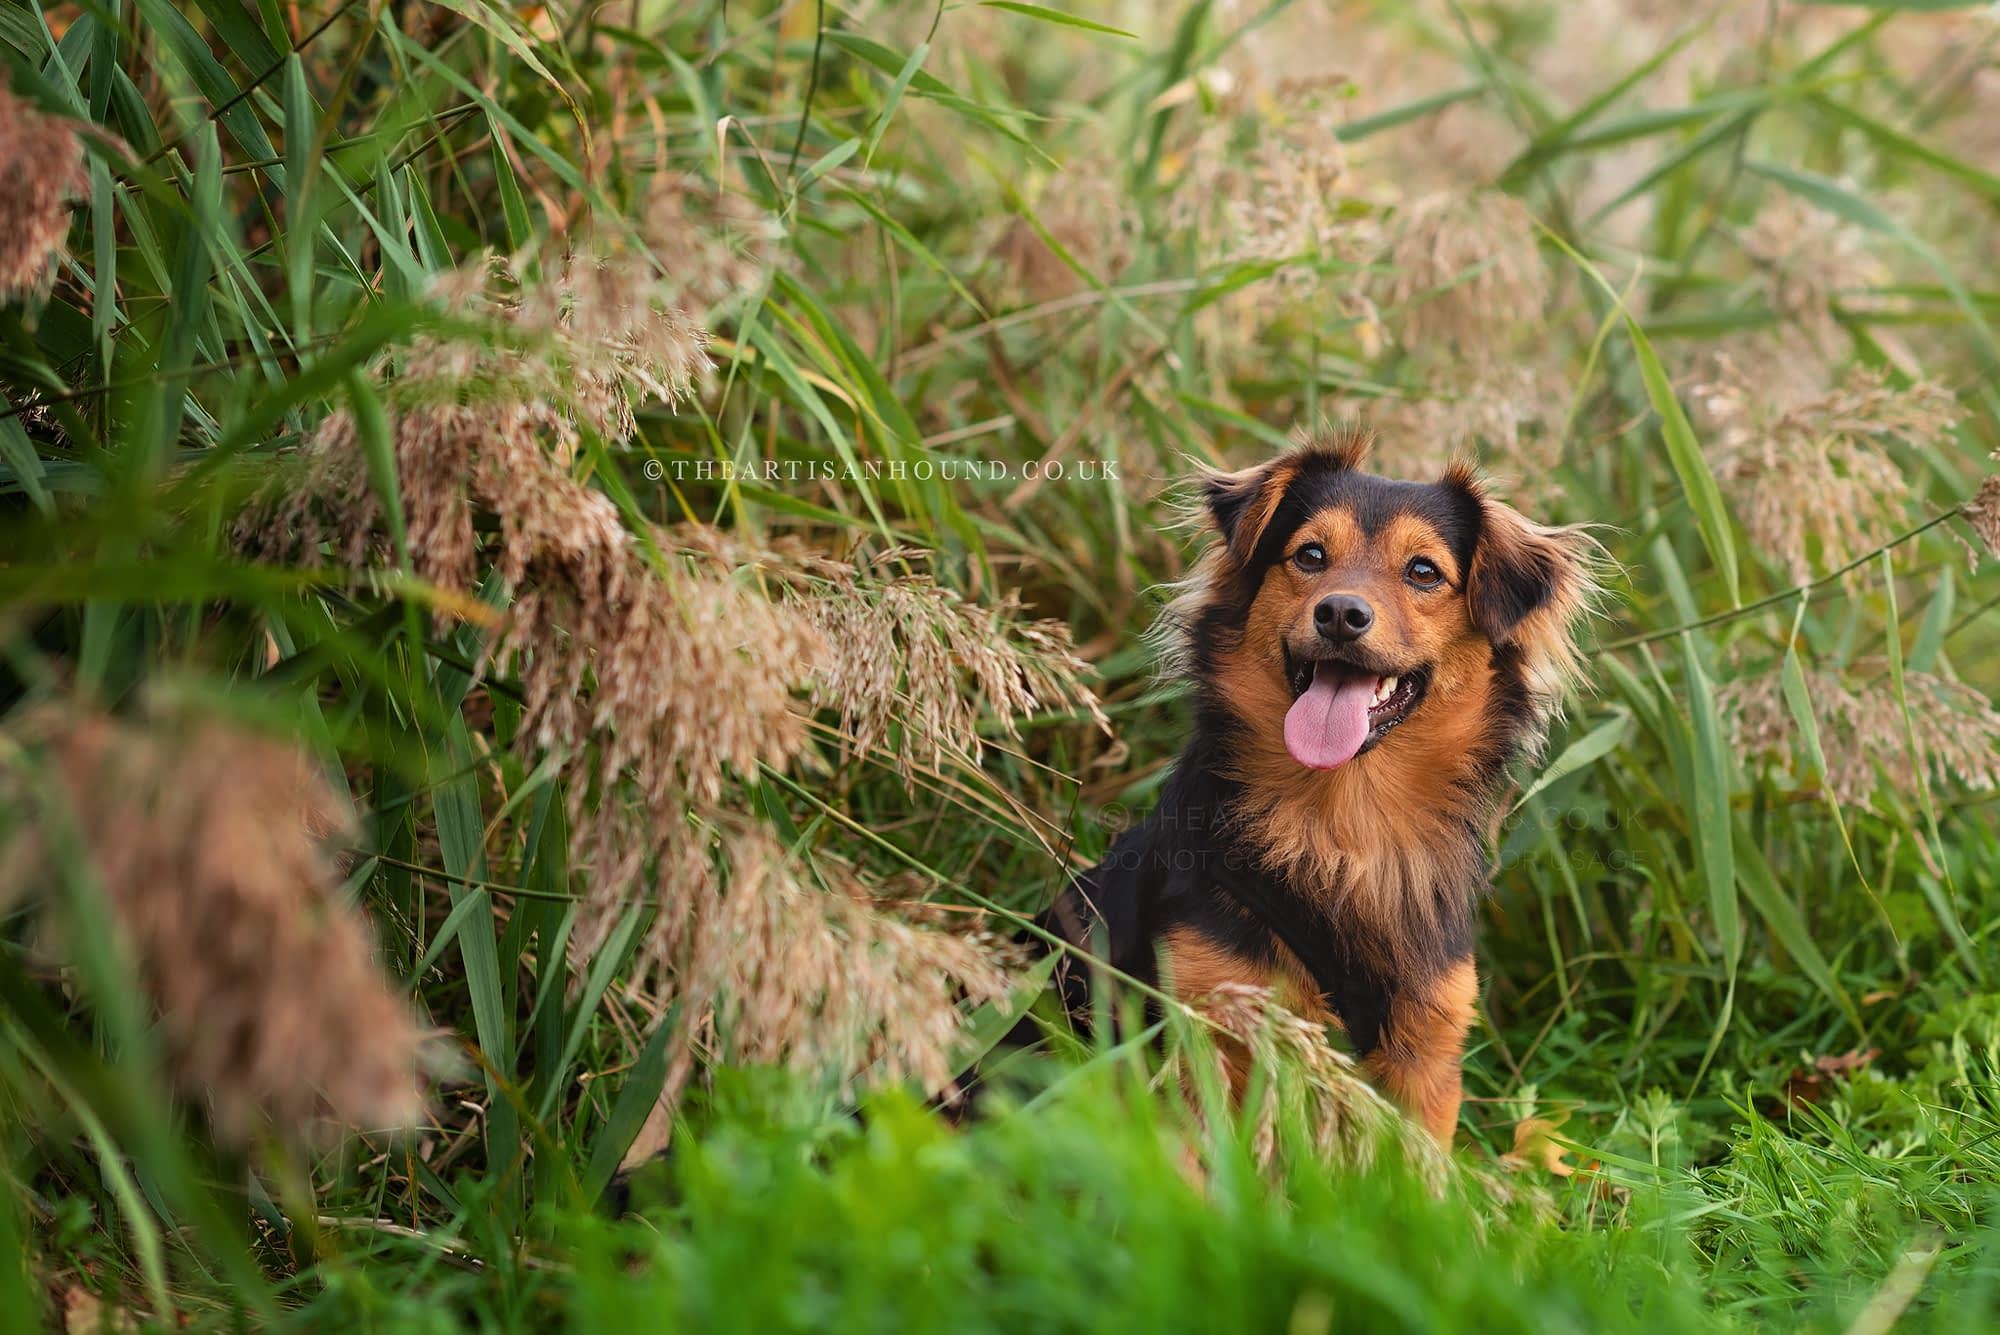 Small black and tan dog sitting on edge of reed bed